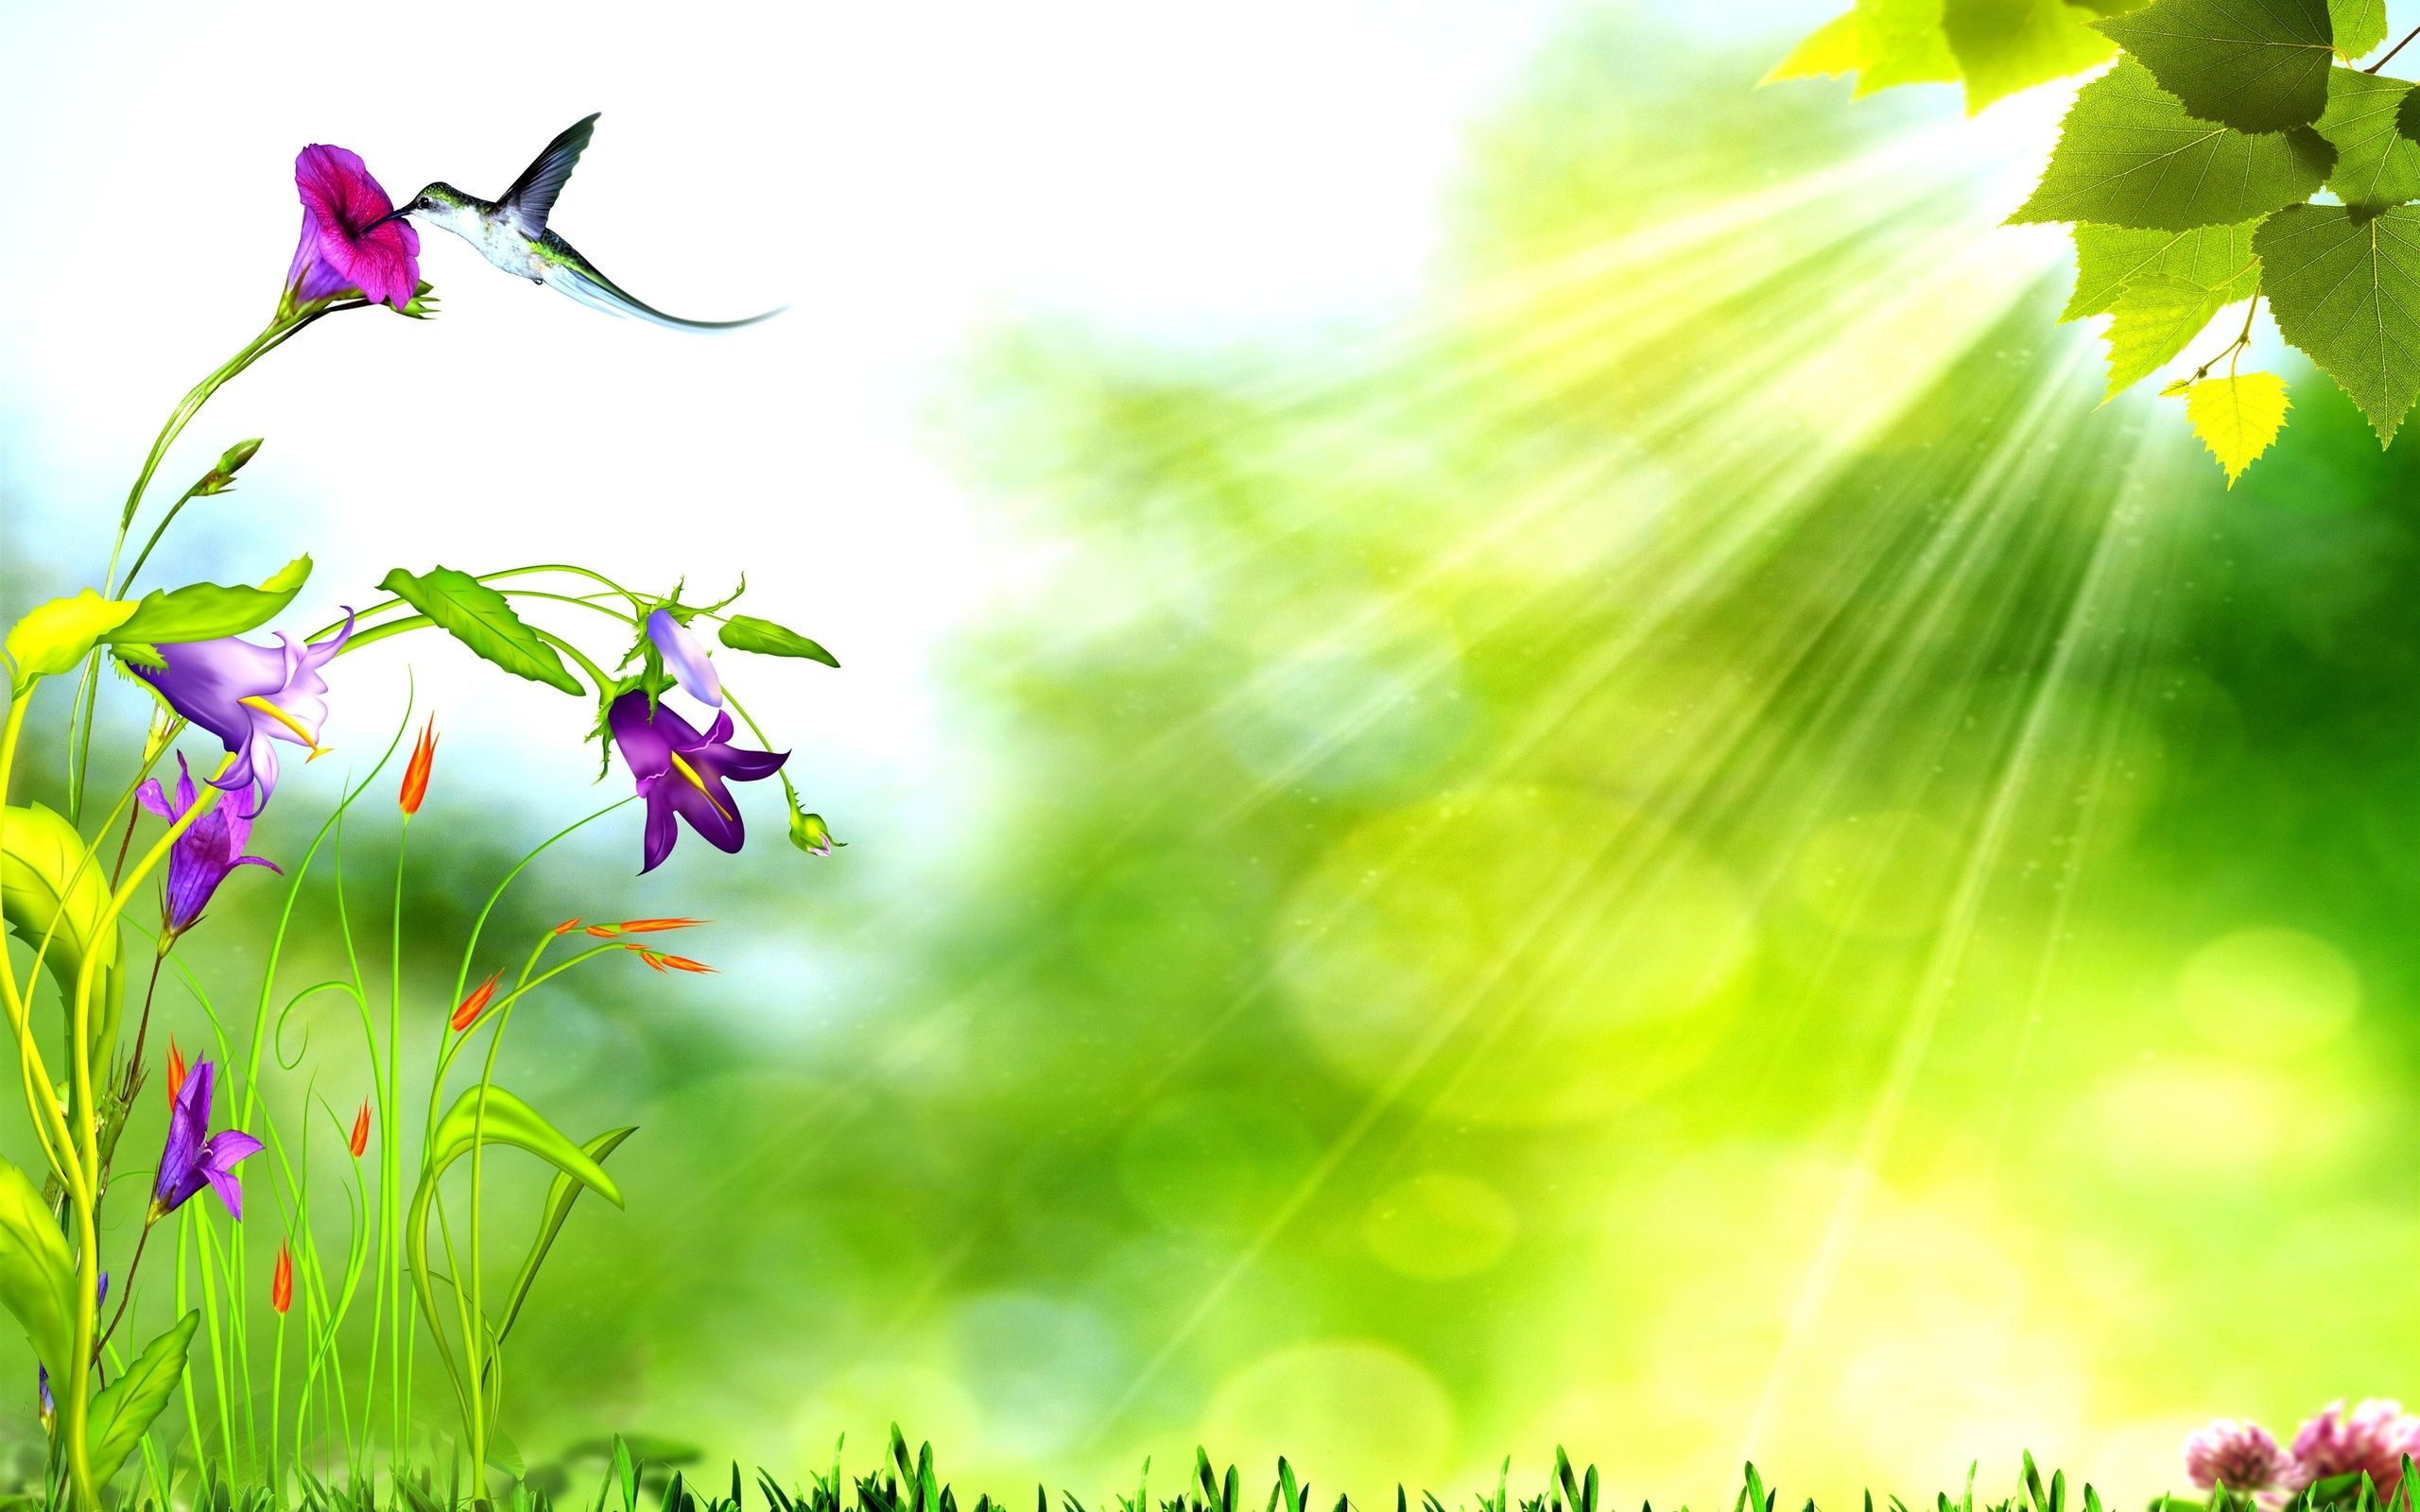 New Nature Background Design , HD Wallpaper & Backgrounds